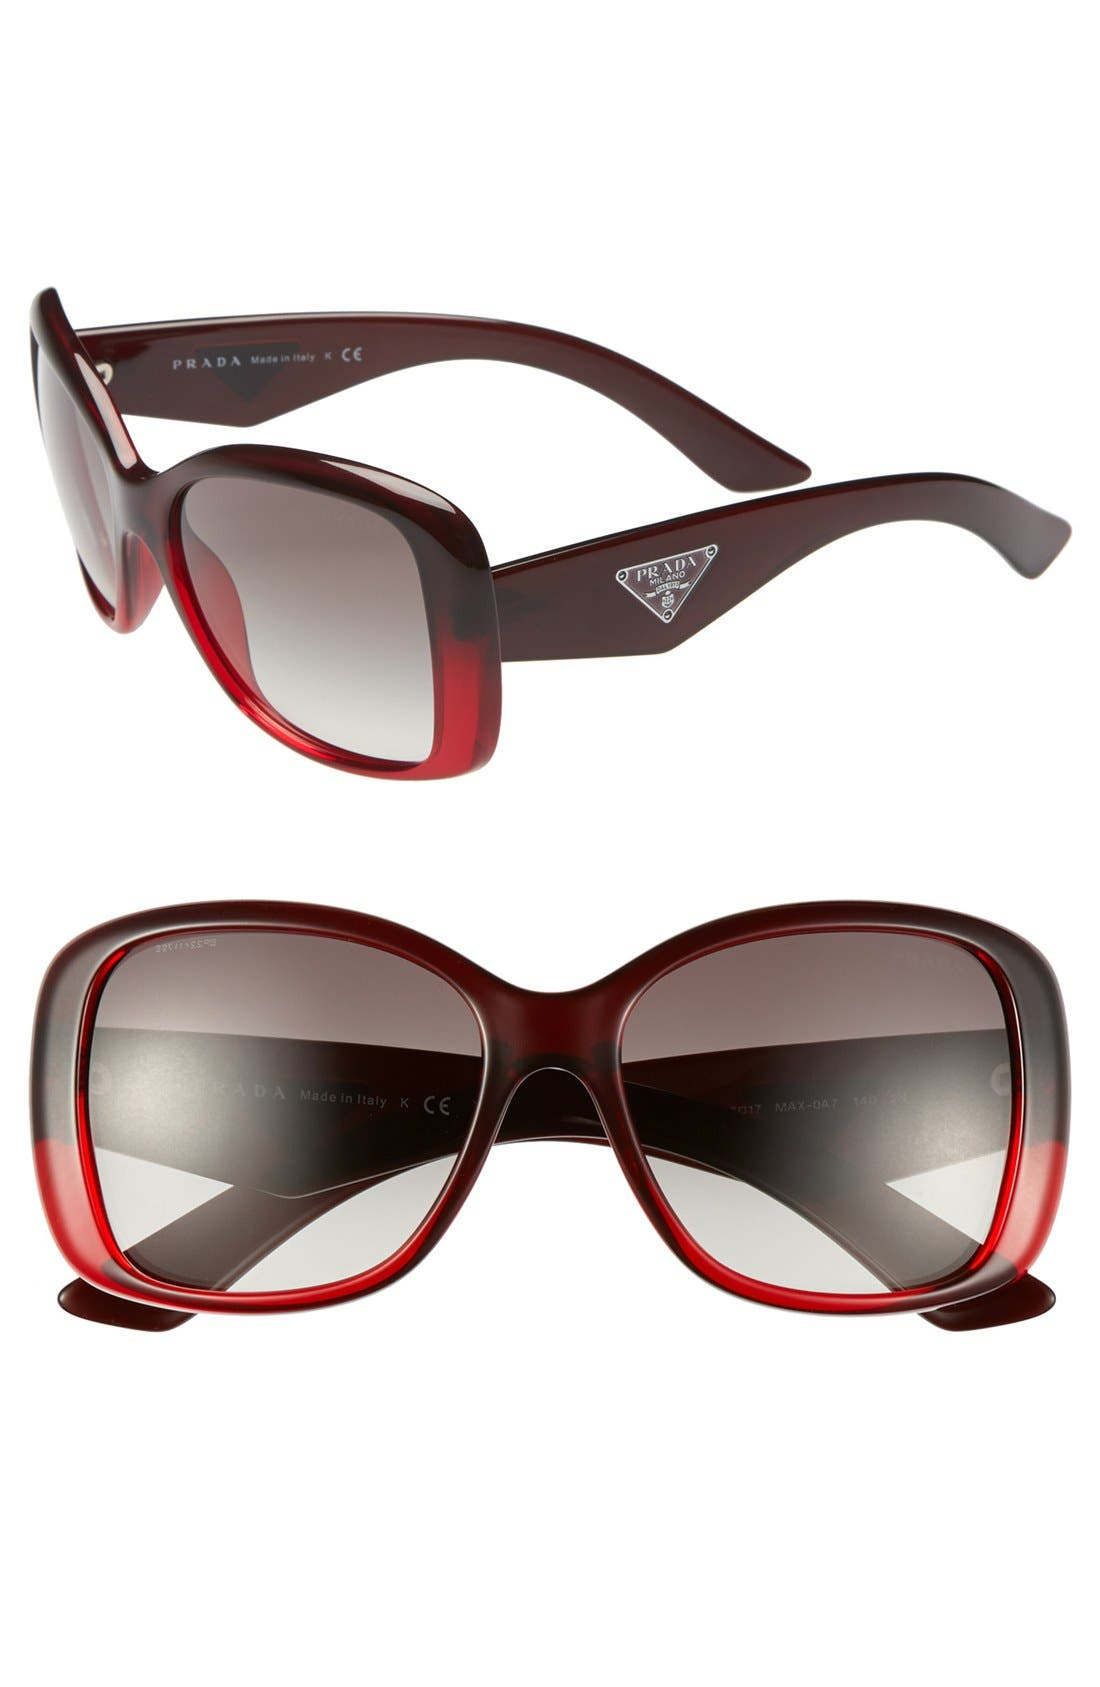 Main Image - Prada 57mm Oversized Sunglasses